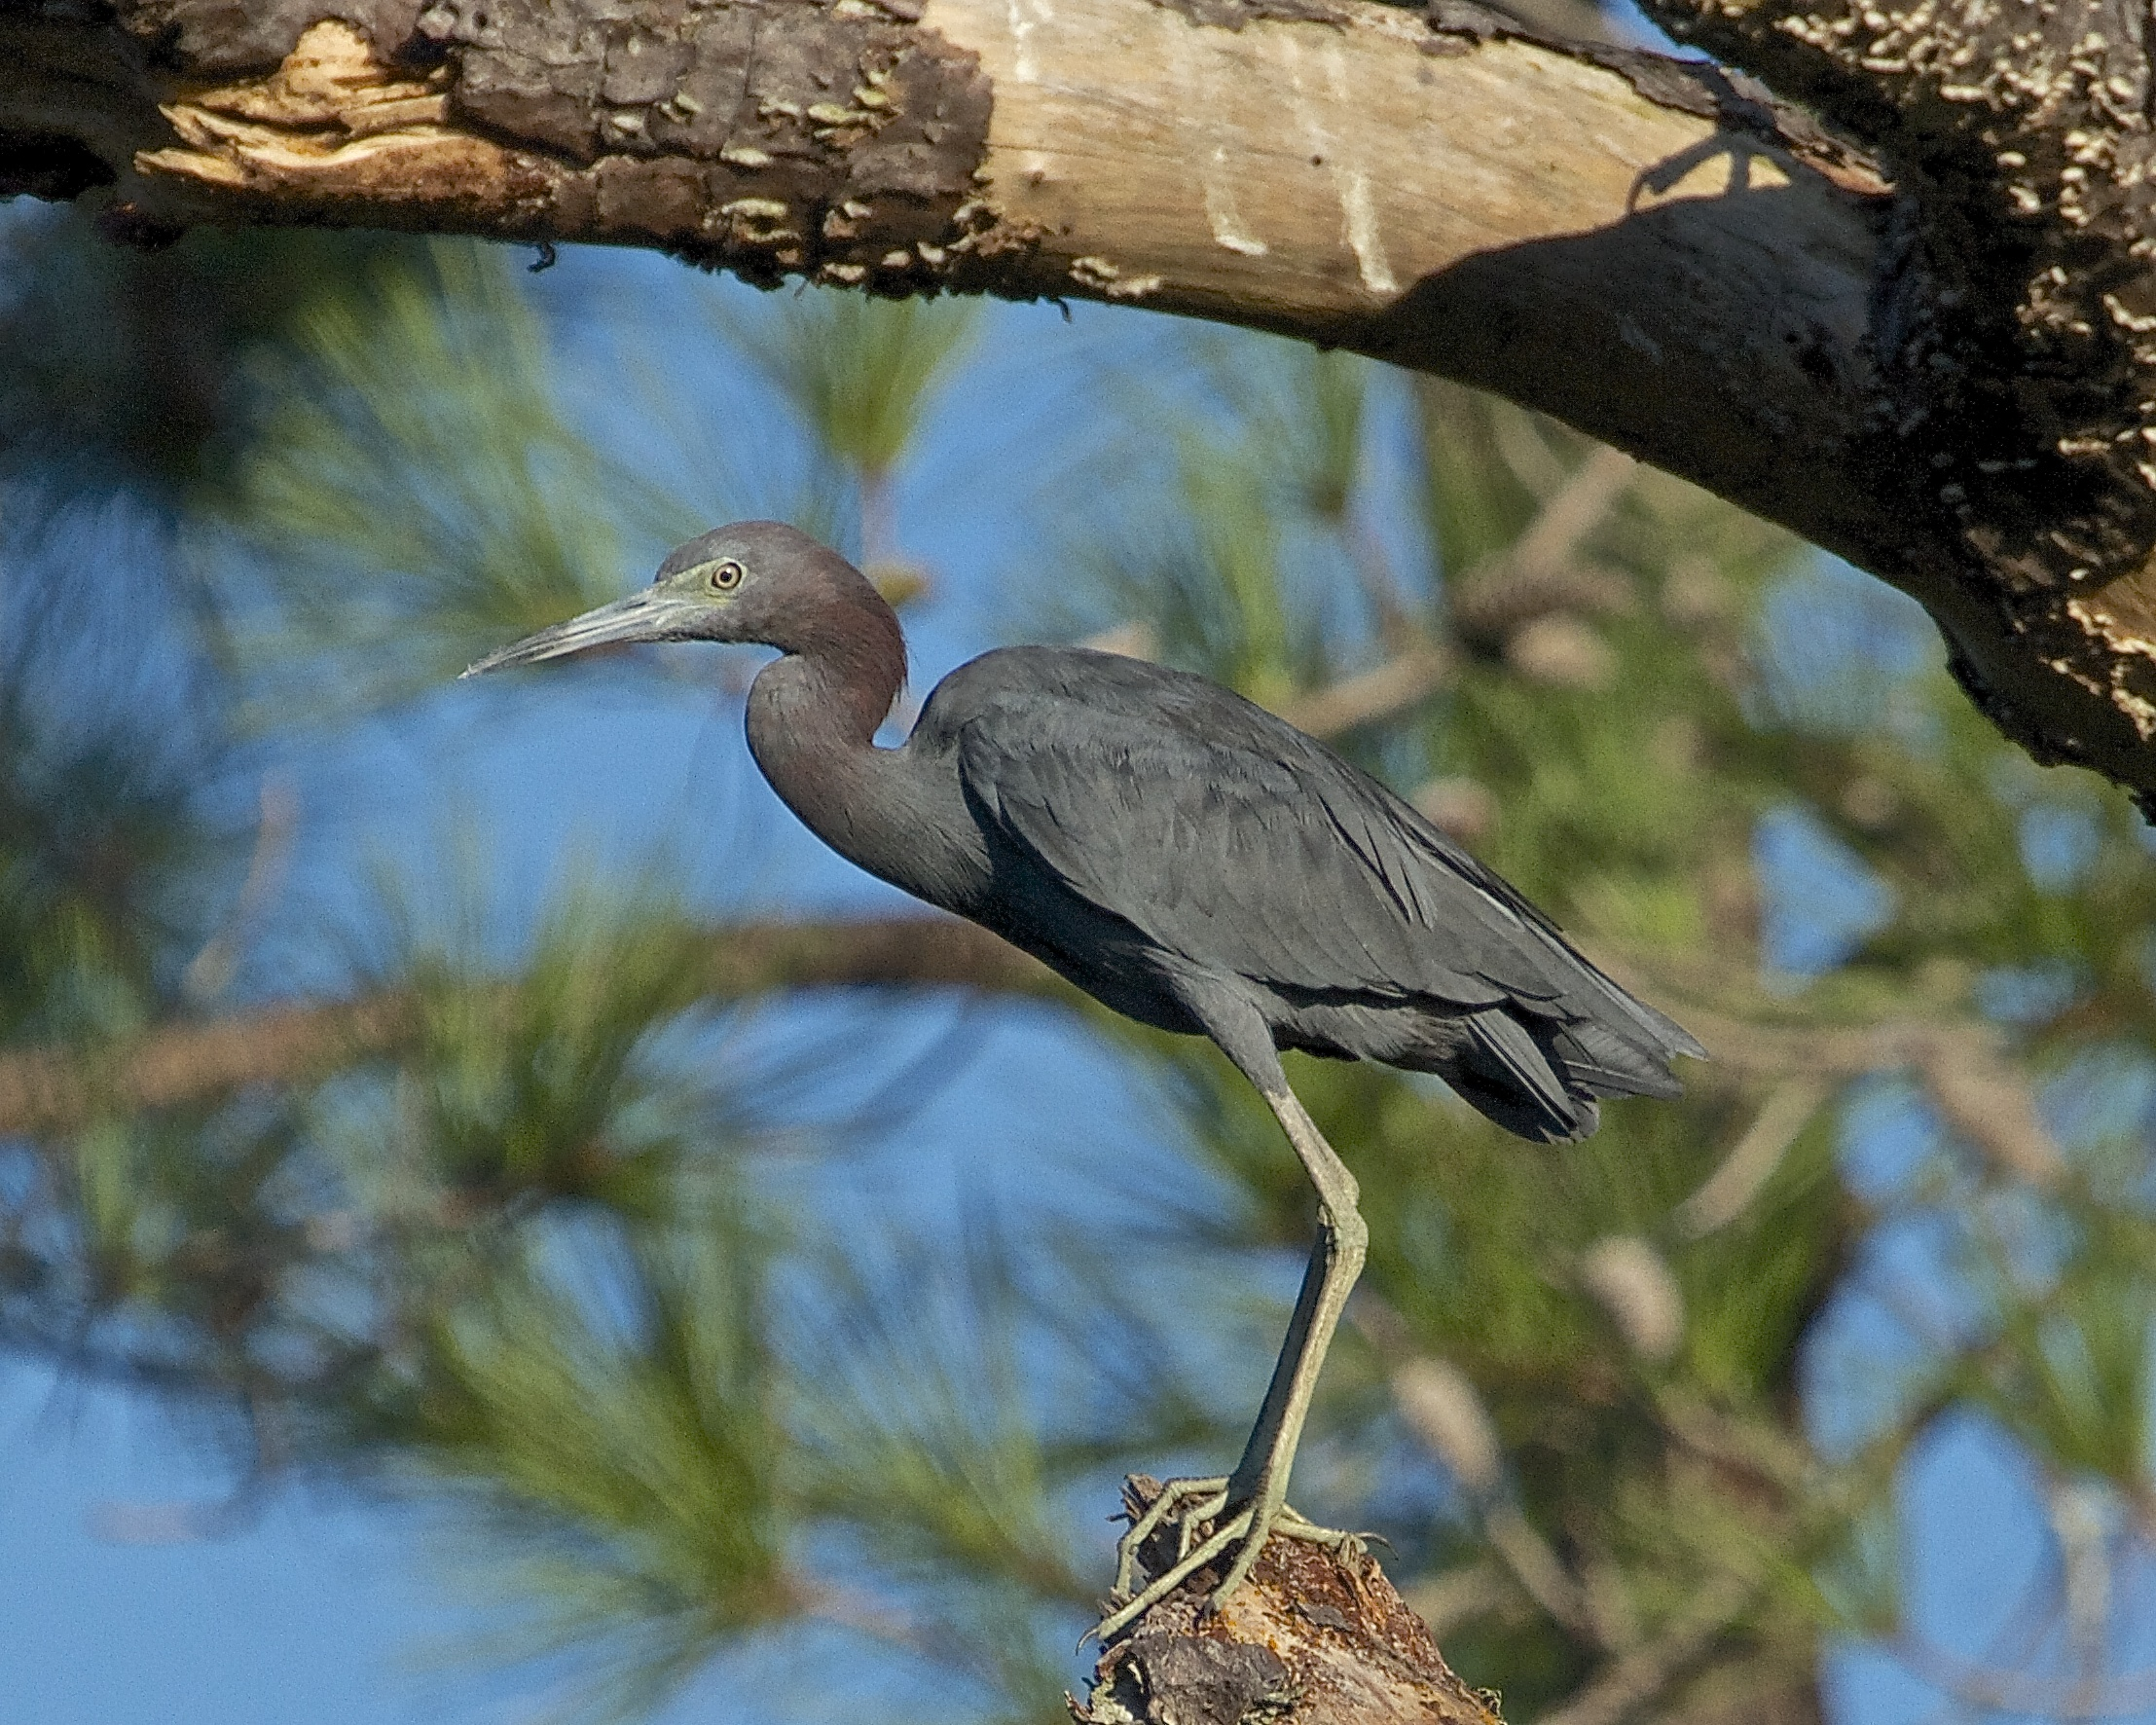 A Little Blue Heron feels the weight of the world hanging over his head!